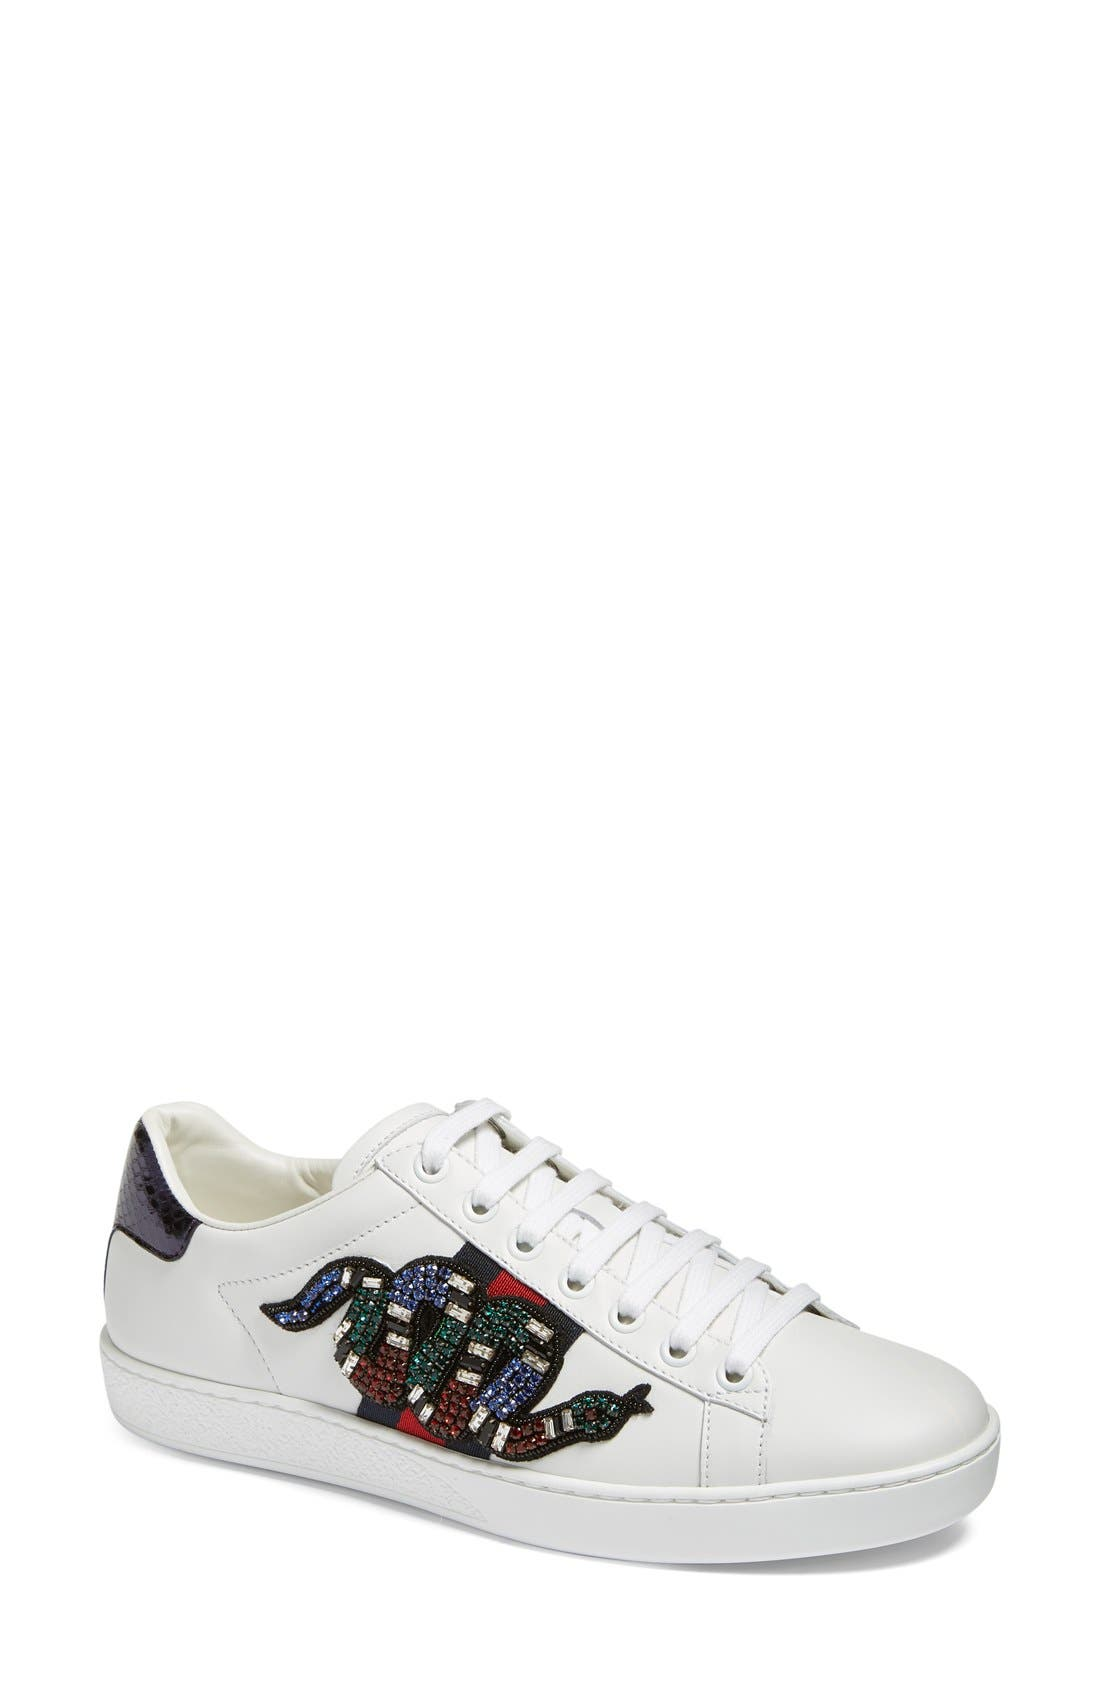 Gucci New Age Snake Embellished Sneaker (Women)